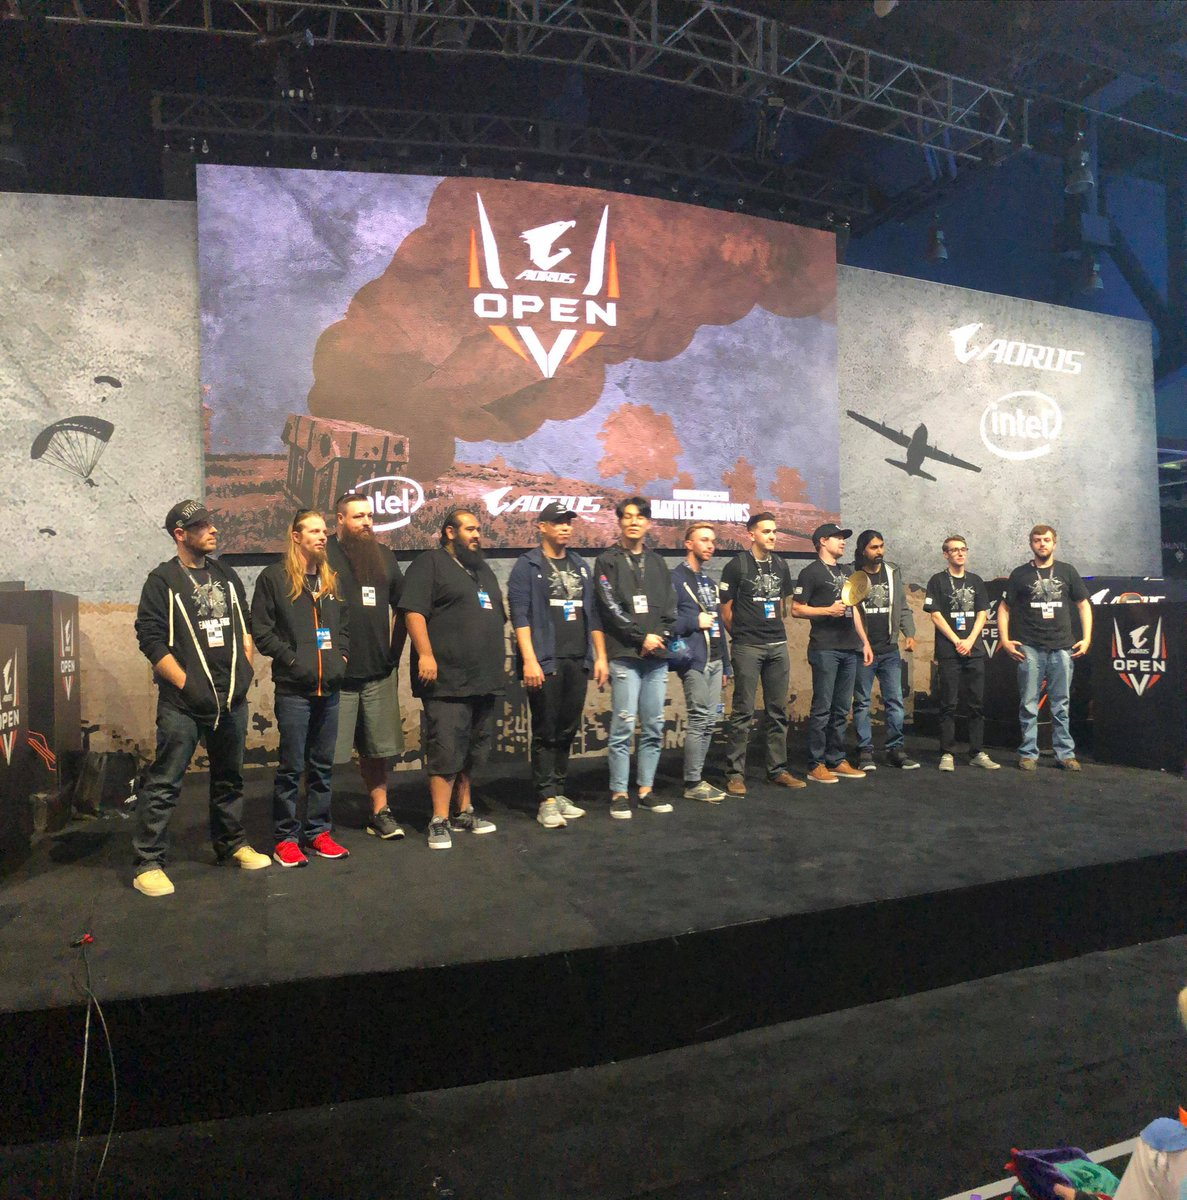 Had a great day. Placed 5th but we did take out #1 and dropped them to 2nd in the final round! Made some new friends and possible 2 enemies ;) now onto the parties! #PAX2018 #AORUSOpen #pubg #embracethehavok<br>http://pic.twitter.com/E8GtldGAo3